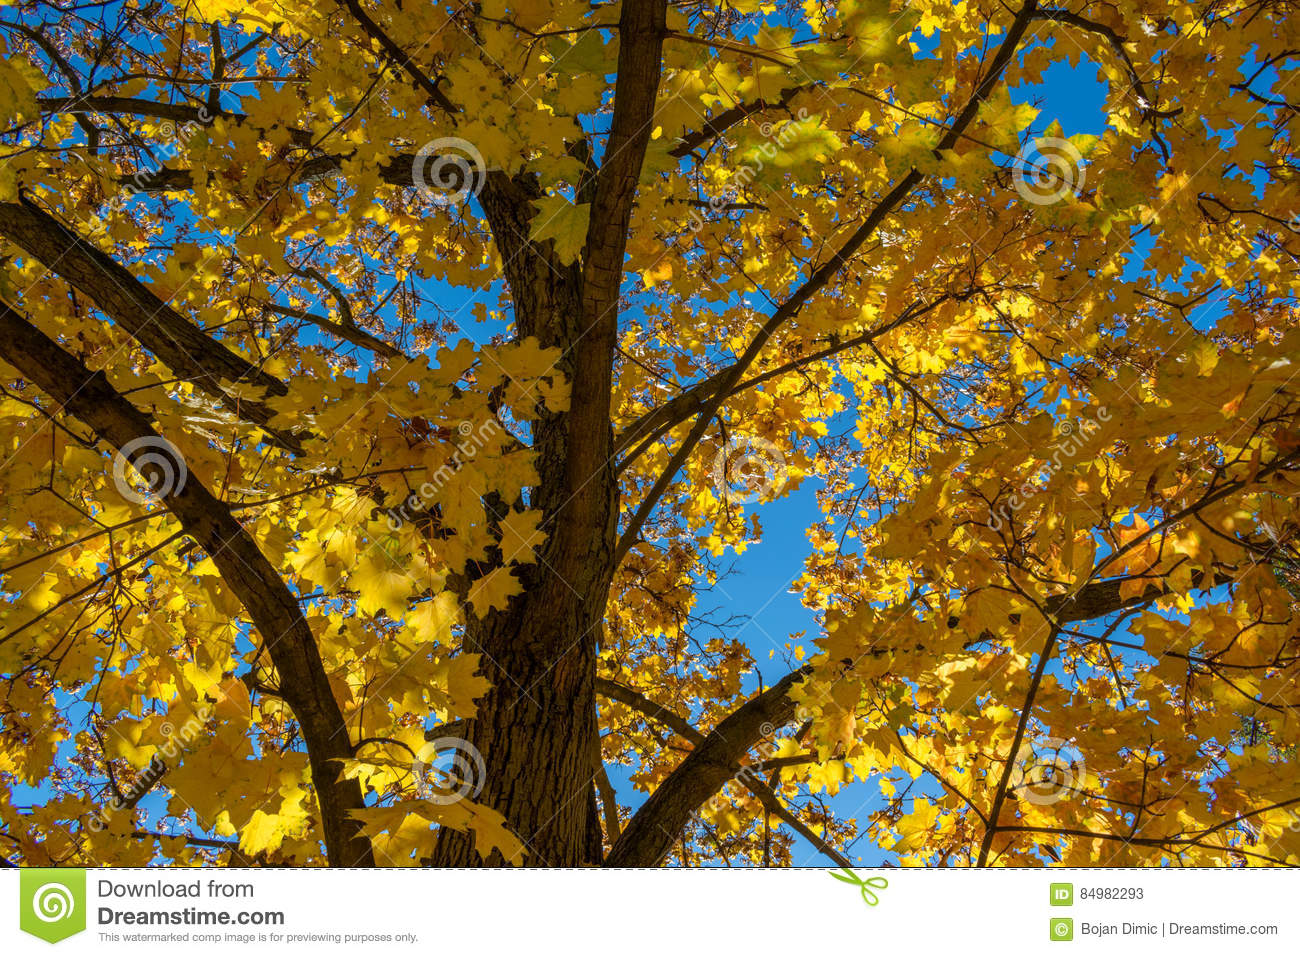 Close up view of maple tree with yellow leafs